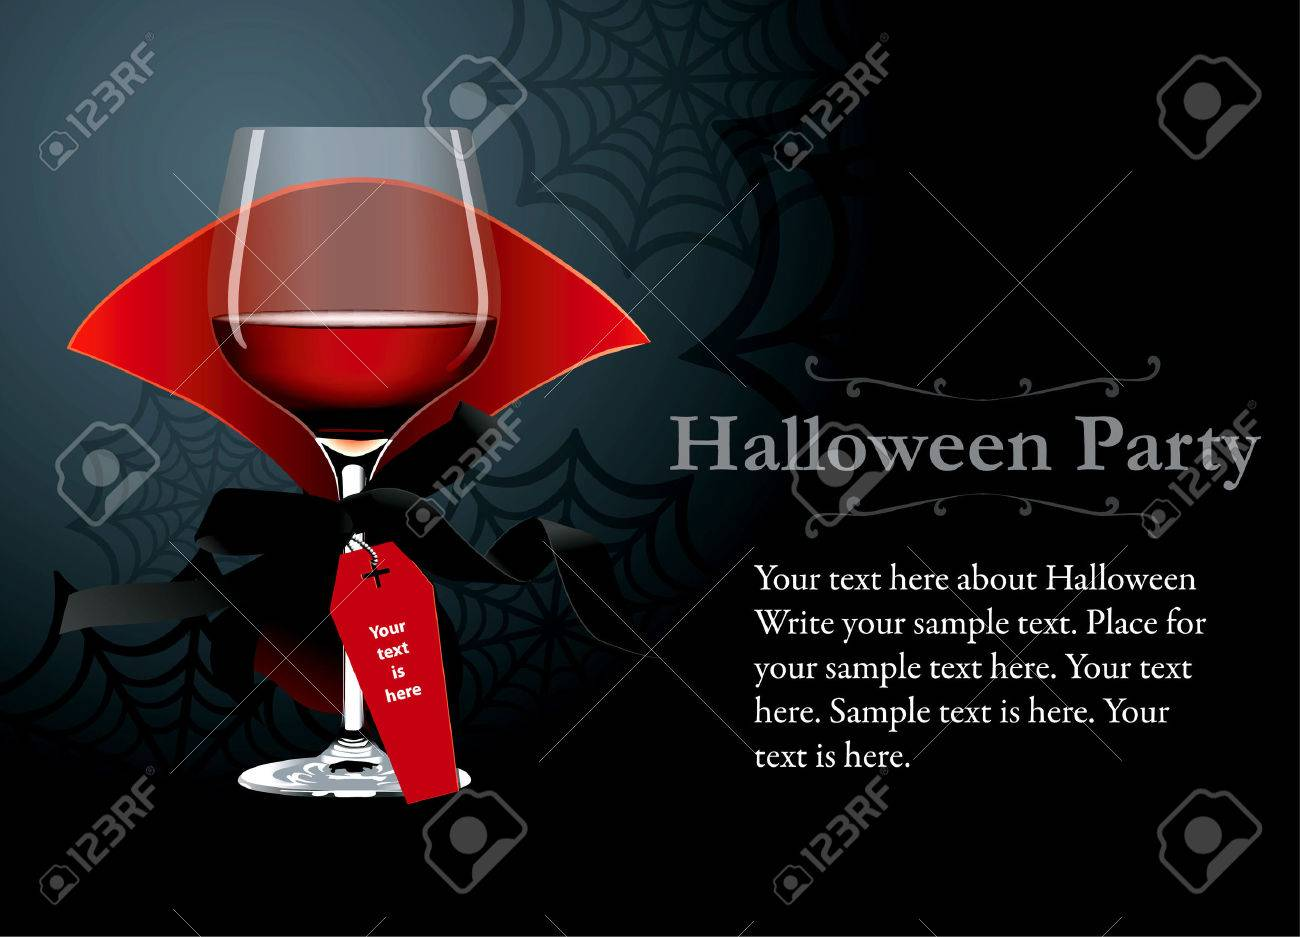 Vector Of Halloween Party Poster Banner Red Wine Glass With Royalty Free Cliparts Vectors And Stock Illustration Image 31087578